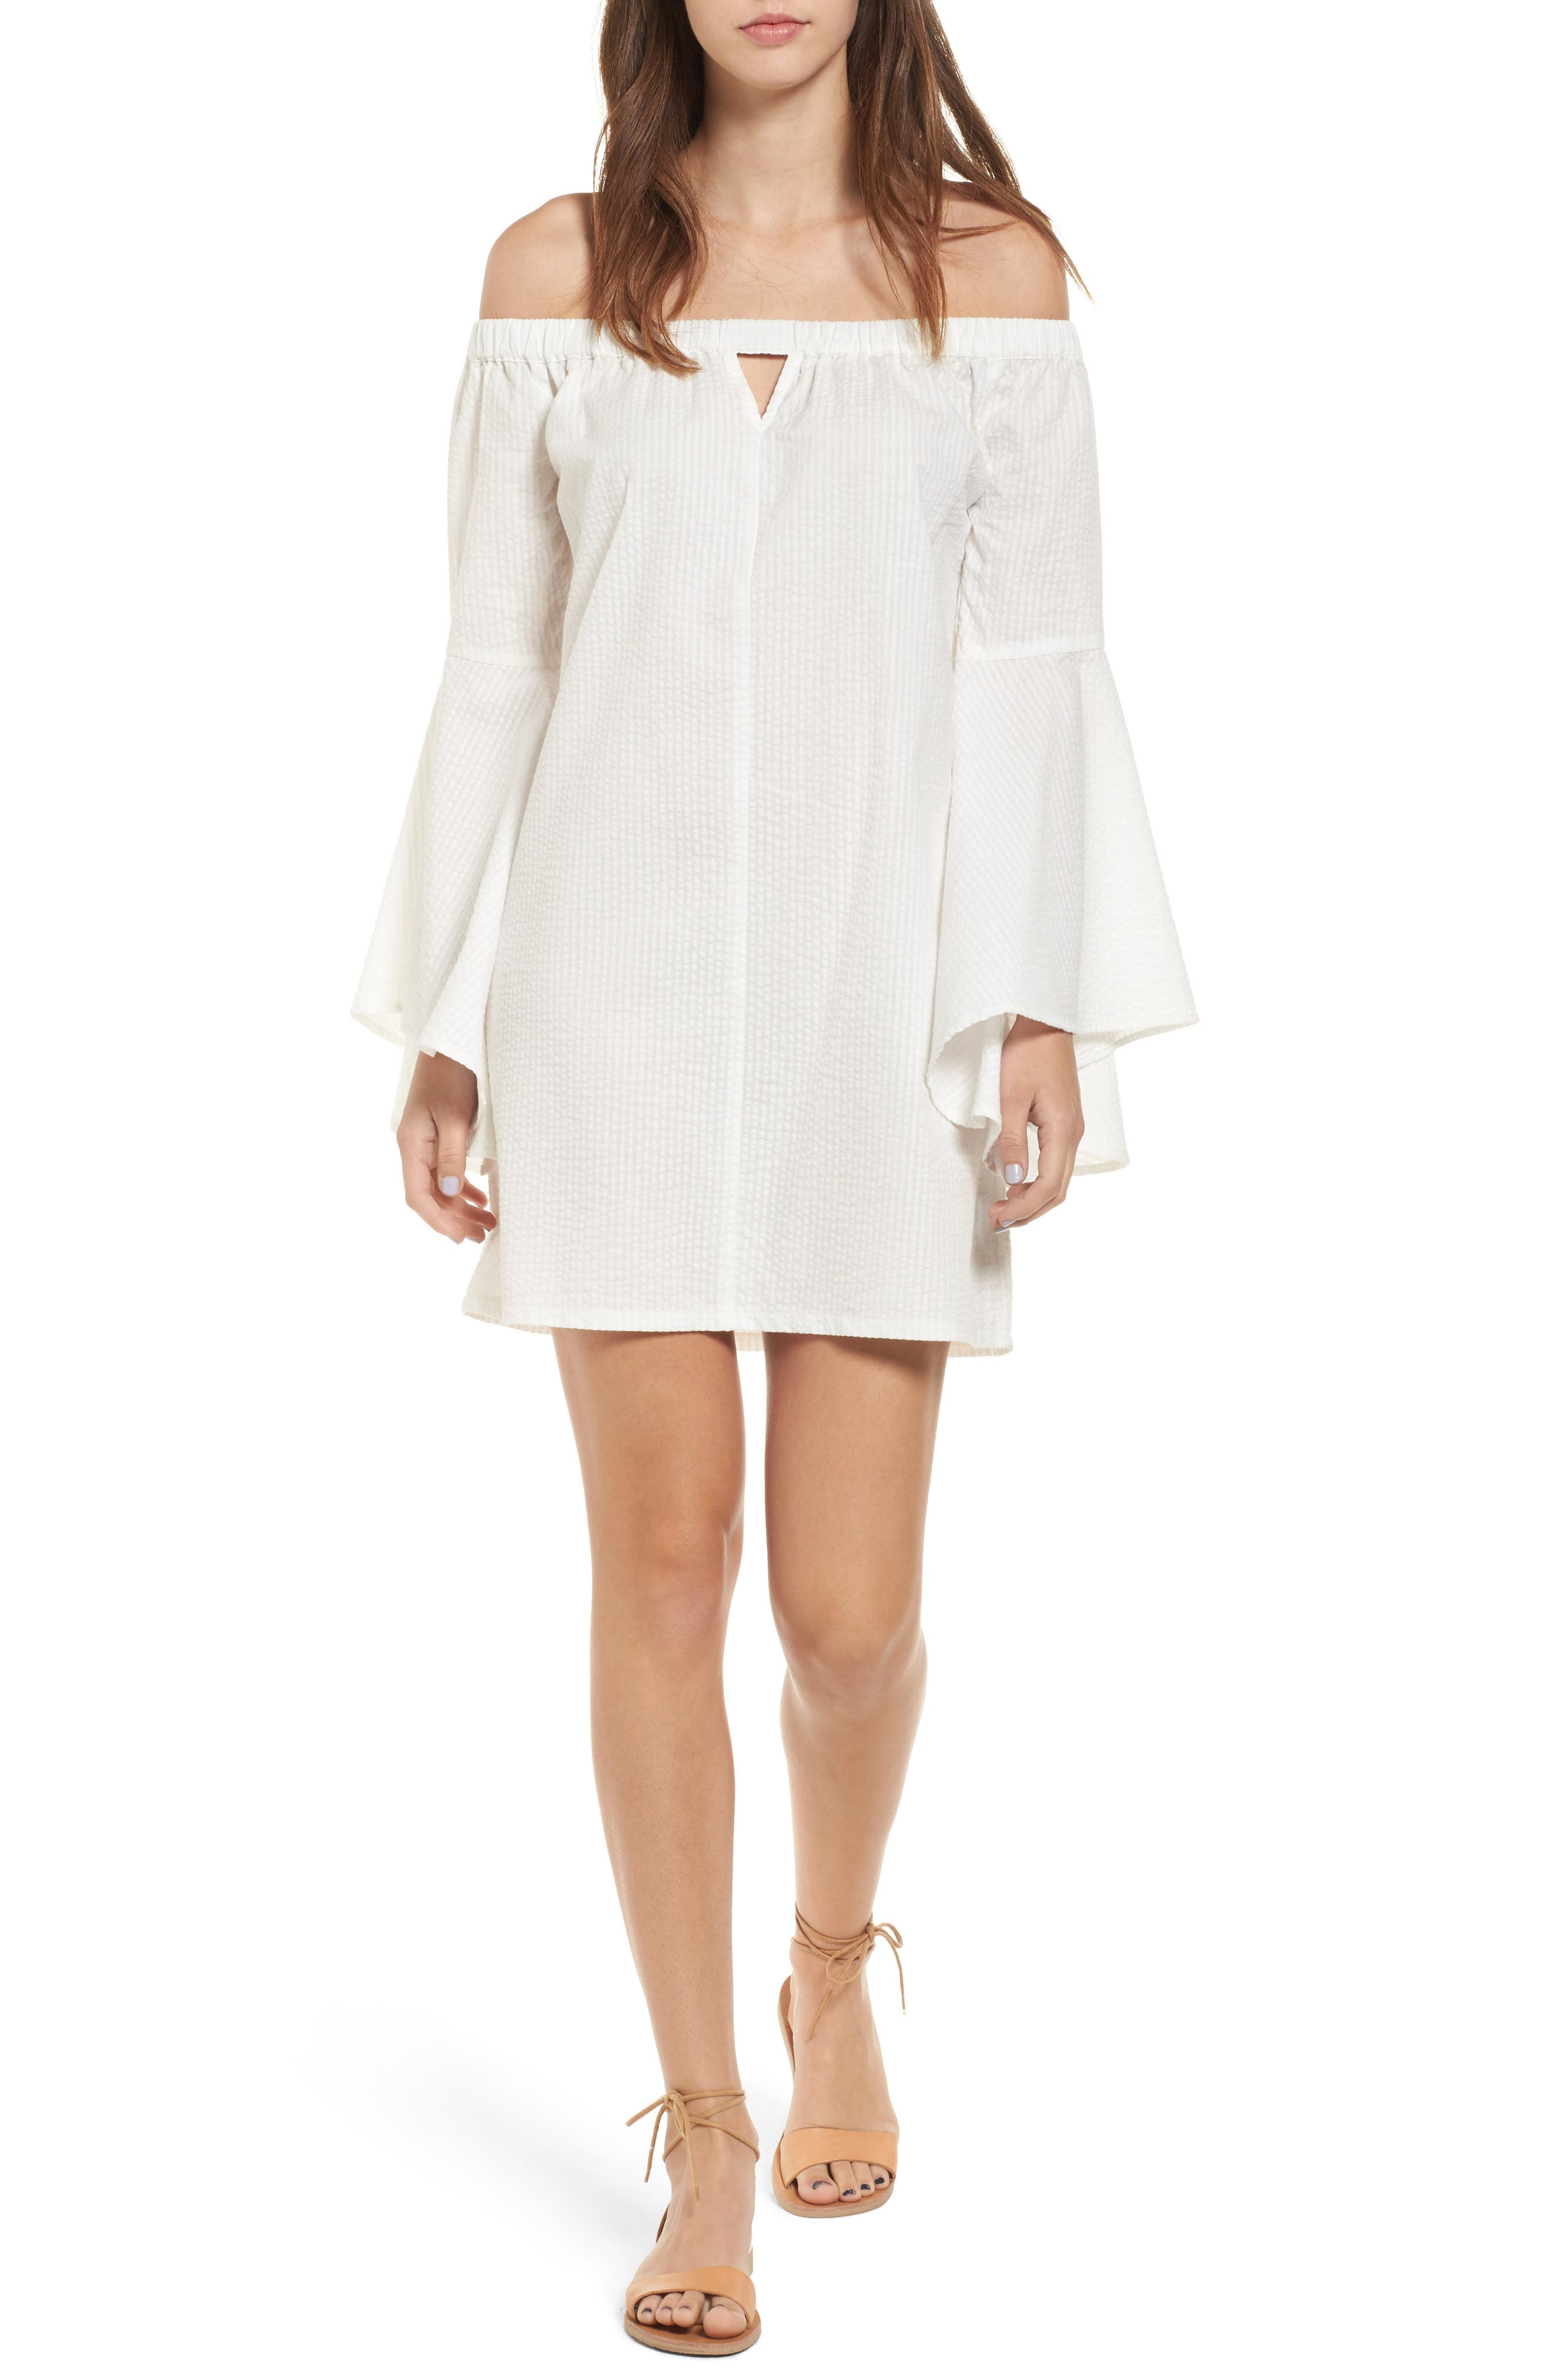 Mimi Chica Bell Sleeve Off the Shoulder Dress